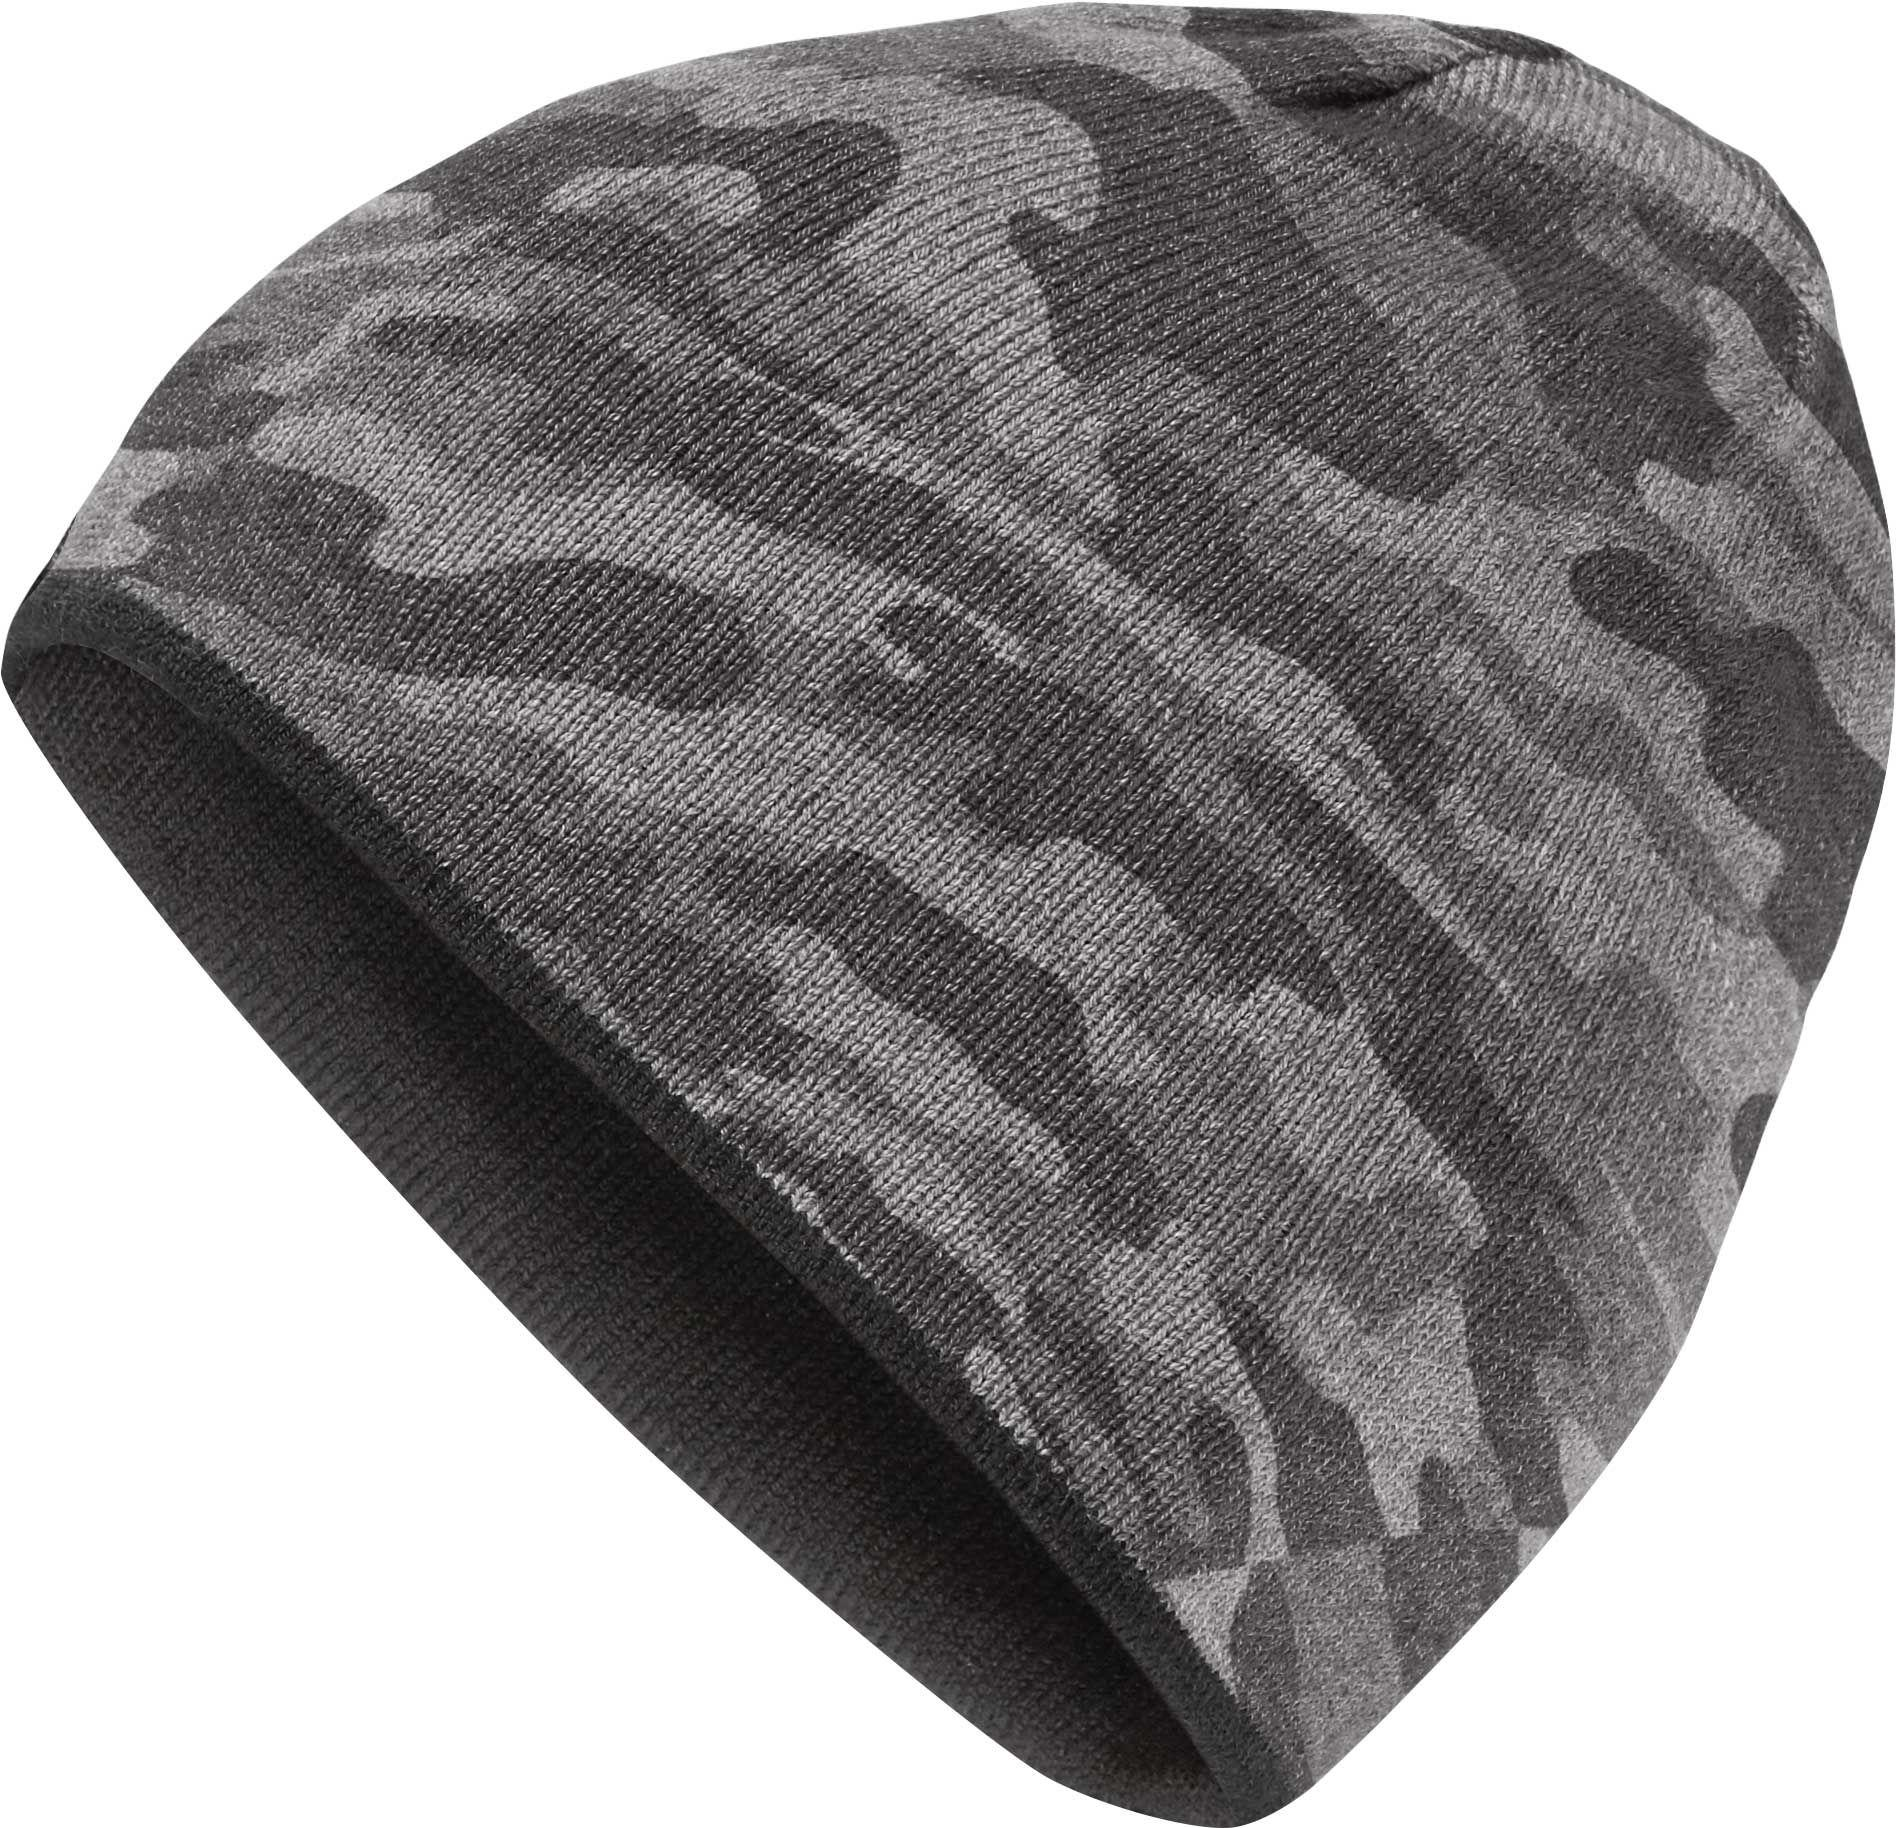 9f75603035fbc The North Face Reversible Highline Beanie in Gray for Men - Lyst